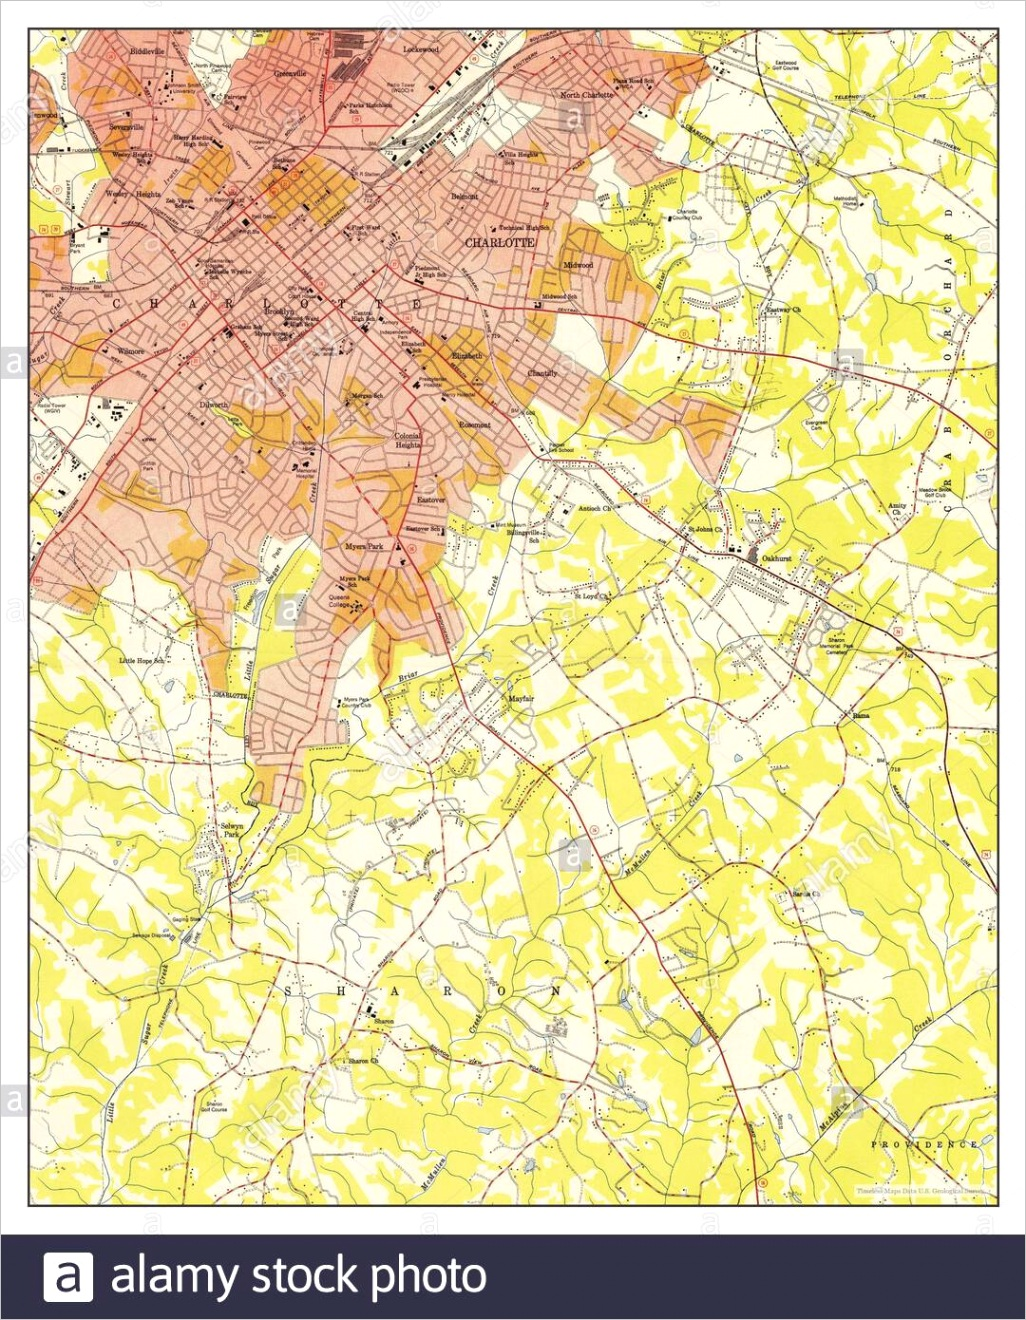 charlotte east north carolina map 1949 united states of america by timeless maps data us geological survey image